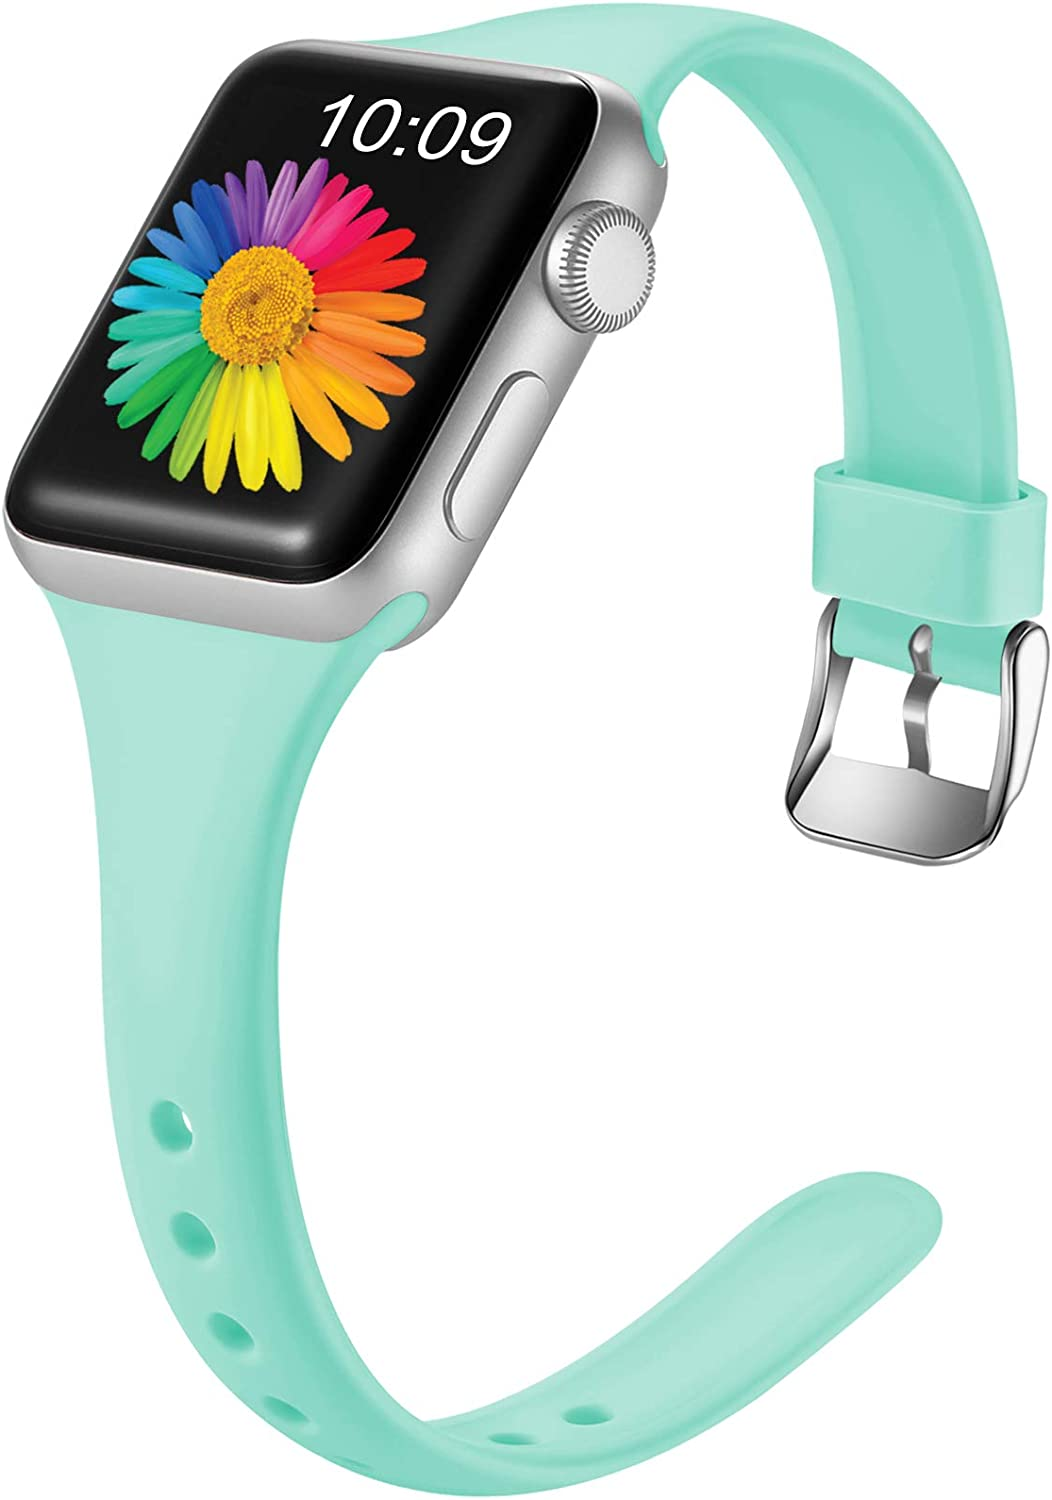 Getino Compatible with Apple Watch Band 40mm 38mm for Women Men Replacement Accessory Sport Bands for iWatch SE & Series 6 & Series 5 4 3 2 1, Mint Green, S/M